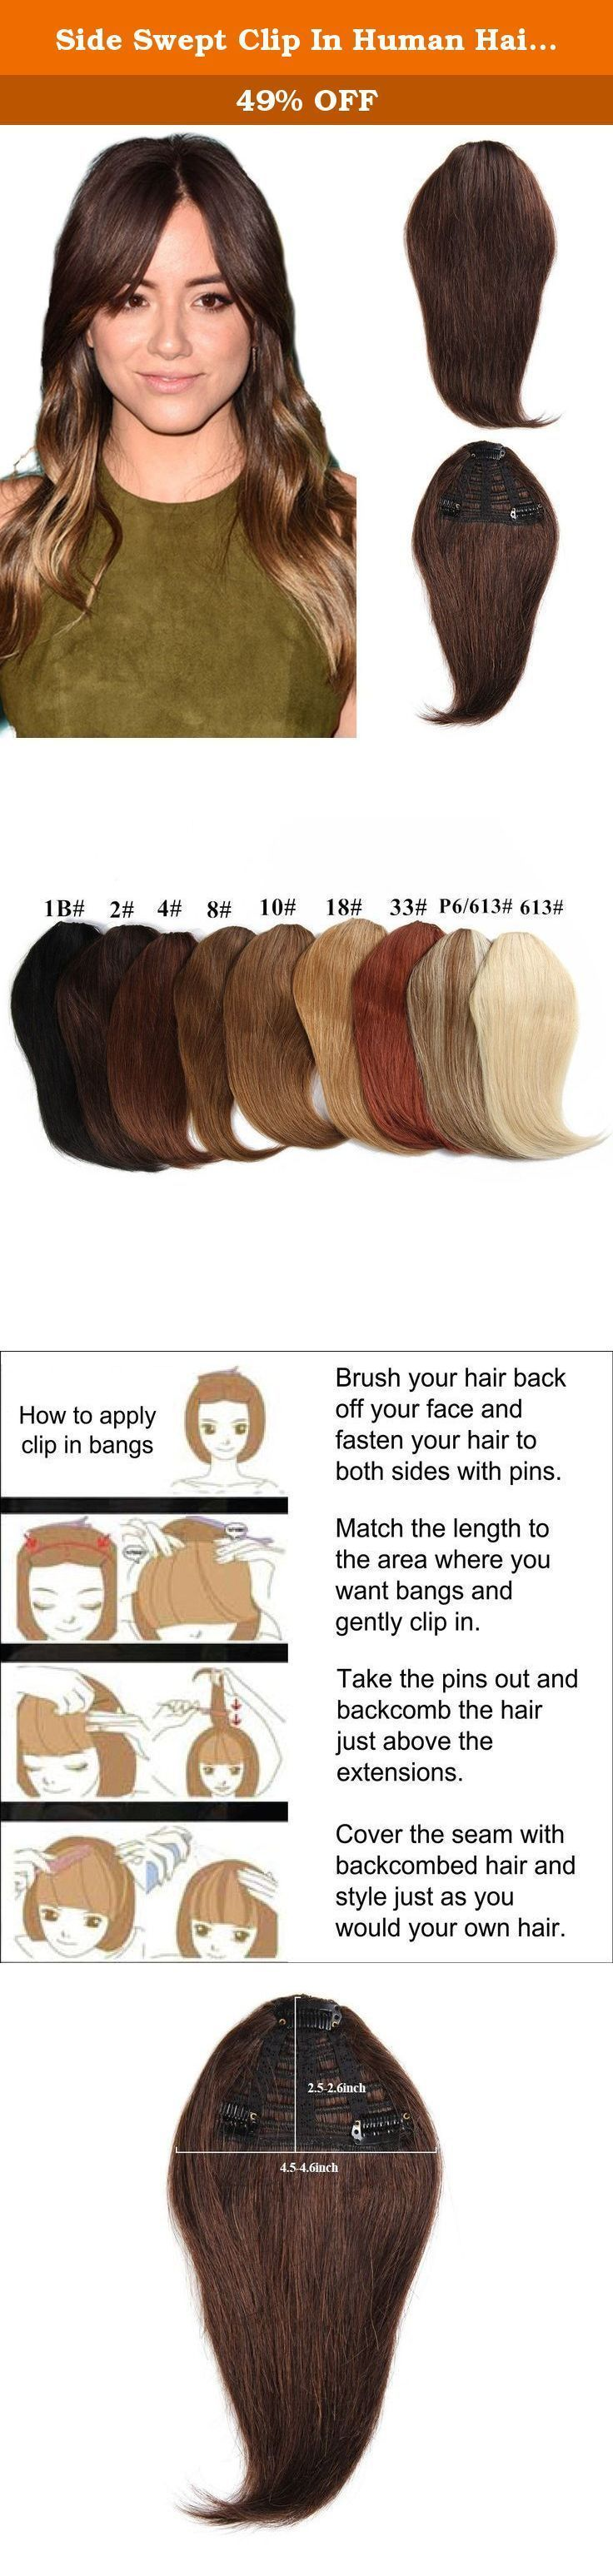 Page Swept Clip In Human Hair Bang Fringe Straight Hairpiece Extensions (2 # Dark Brown) by B ...